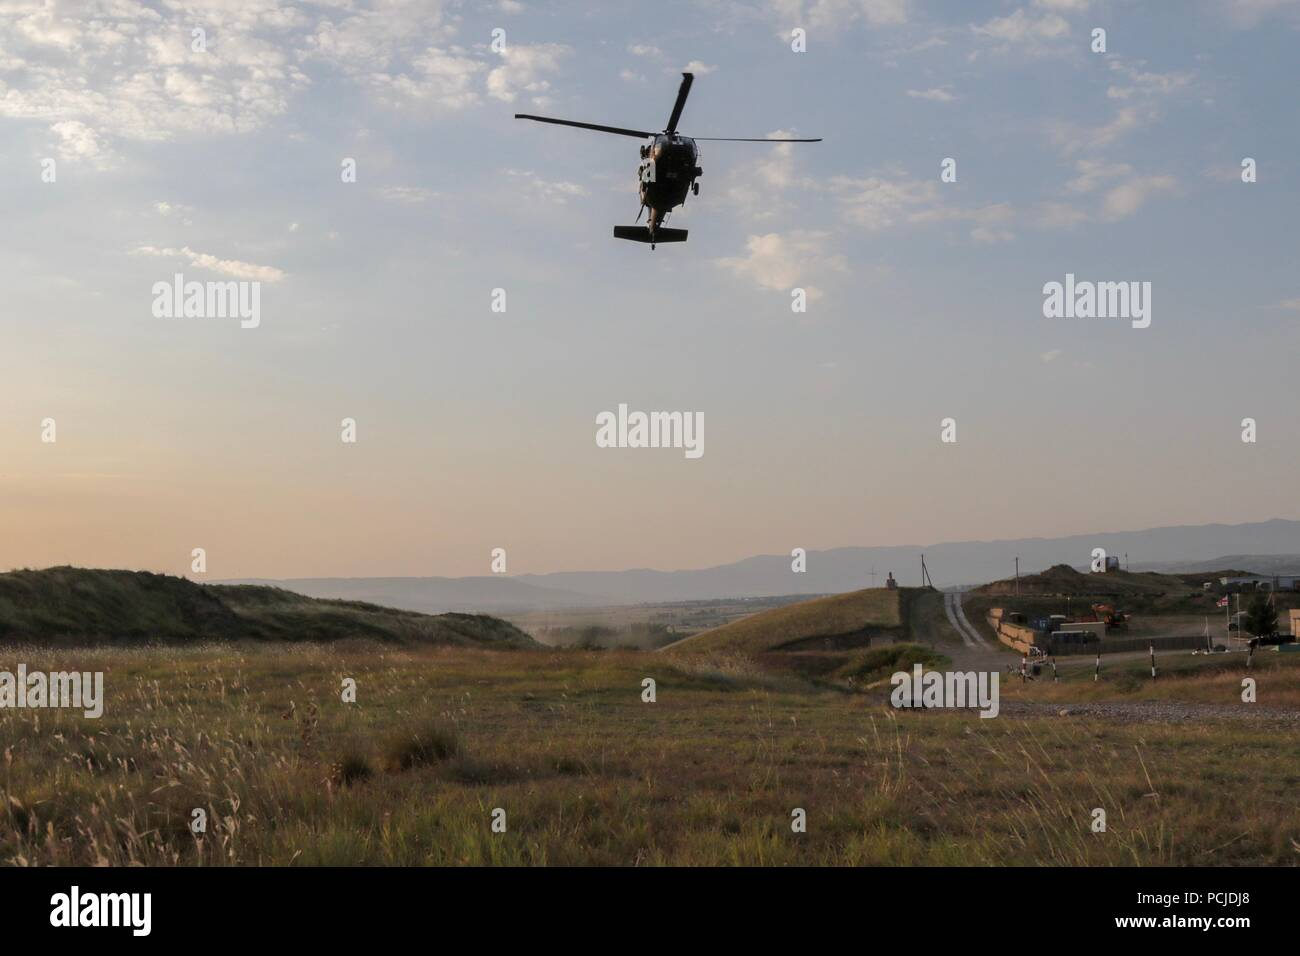 An HH-60 Black Hawk helicopter approaches a landing zone during Noble Partner 18 during a medical evacuation exercise at the Vaziani Training Area, Georgia.  The exercise validated the joint medical evacuation procedures of U.S. and Georgia Armed Forces. Stock Photo